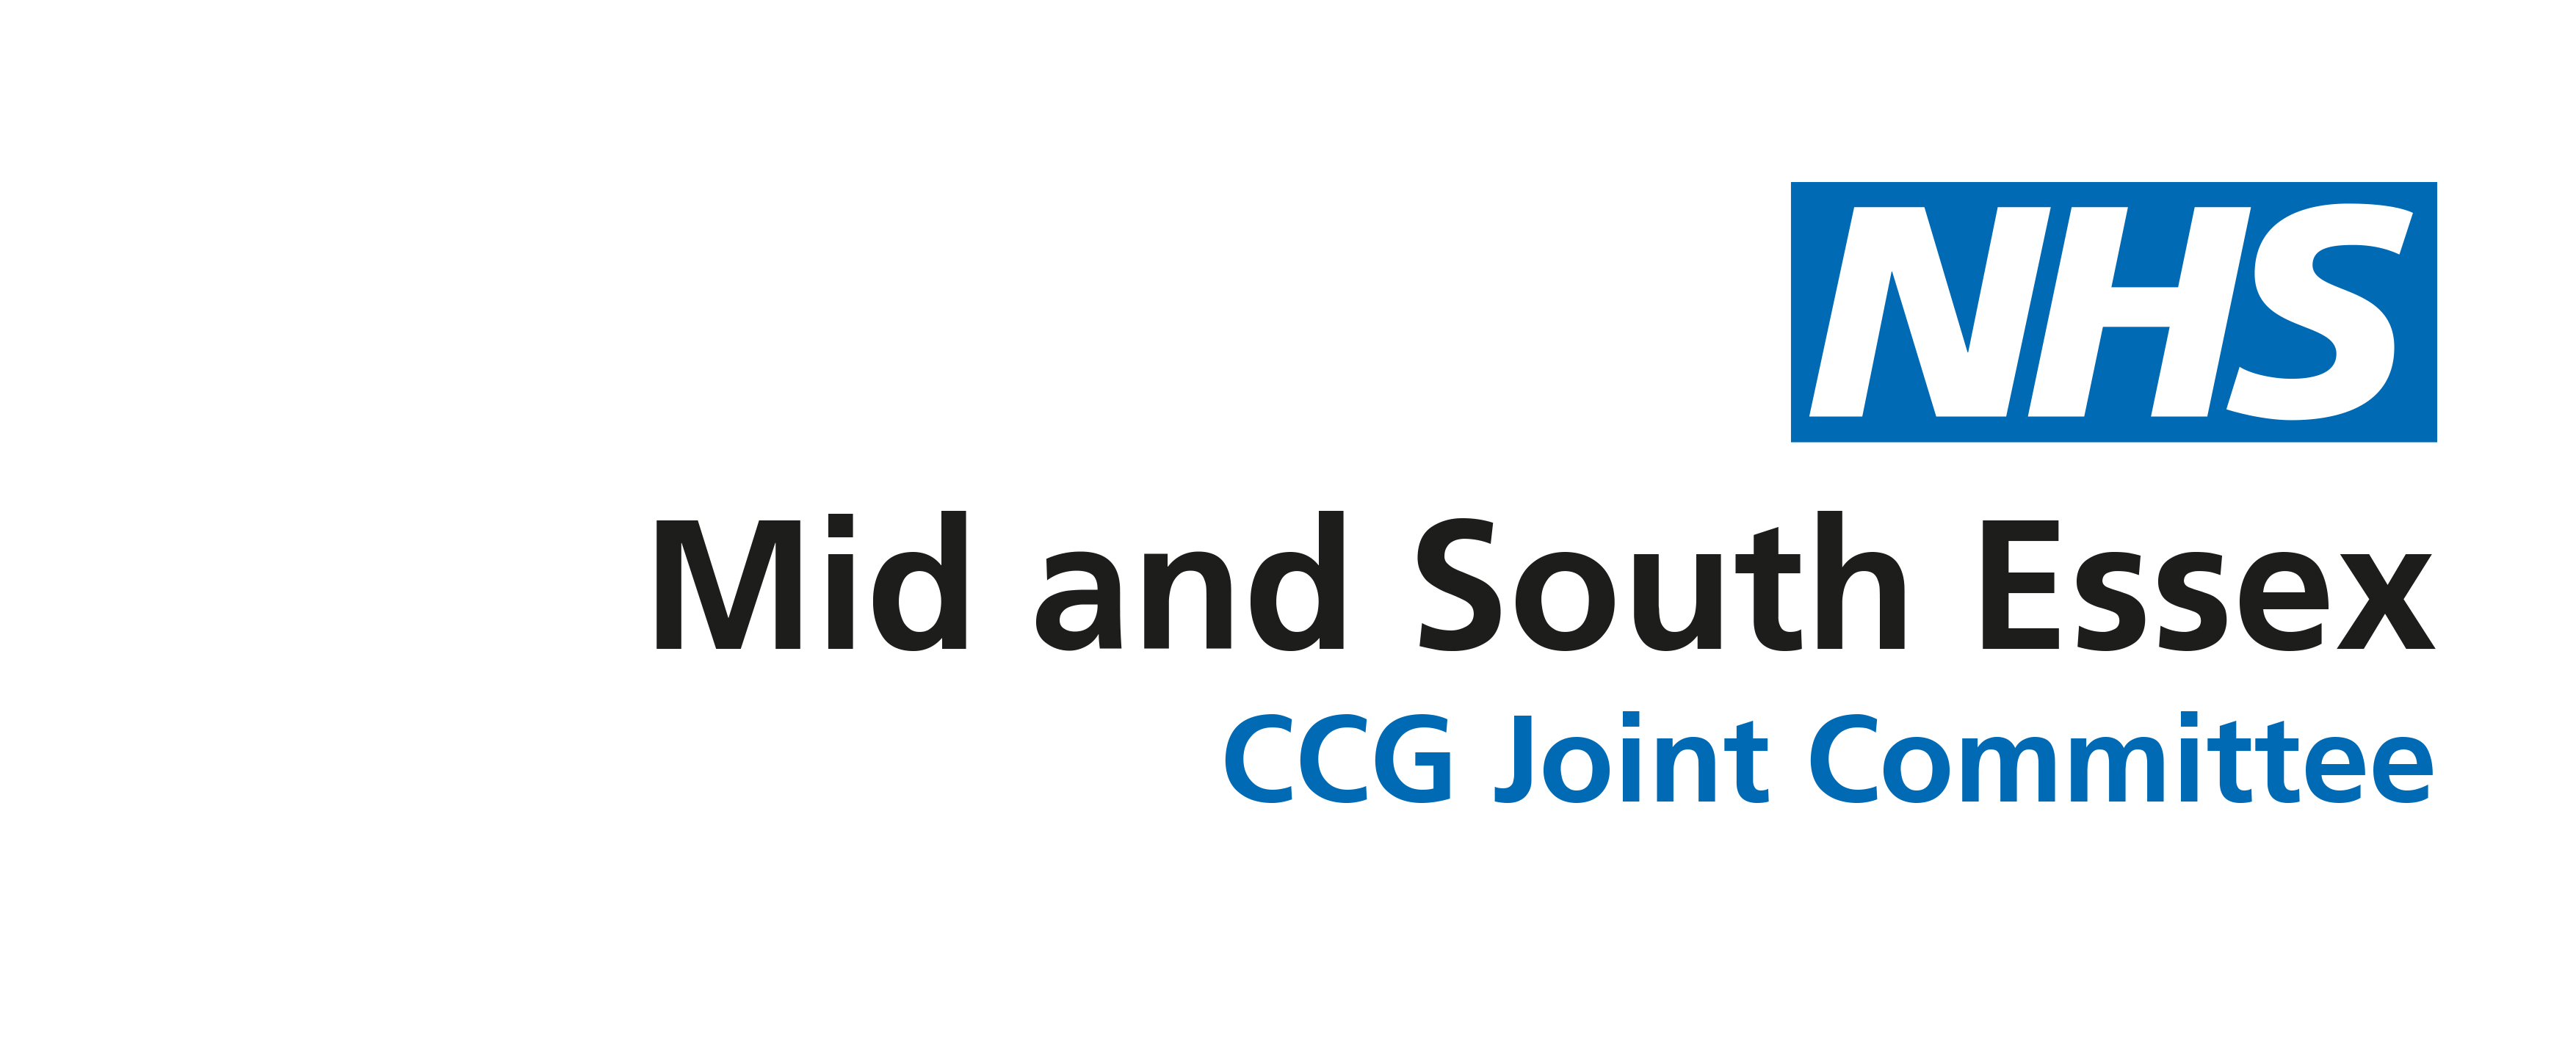 NHS JCT Logo June 2019